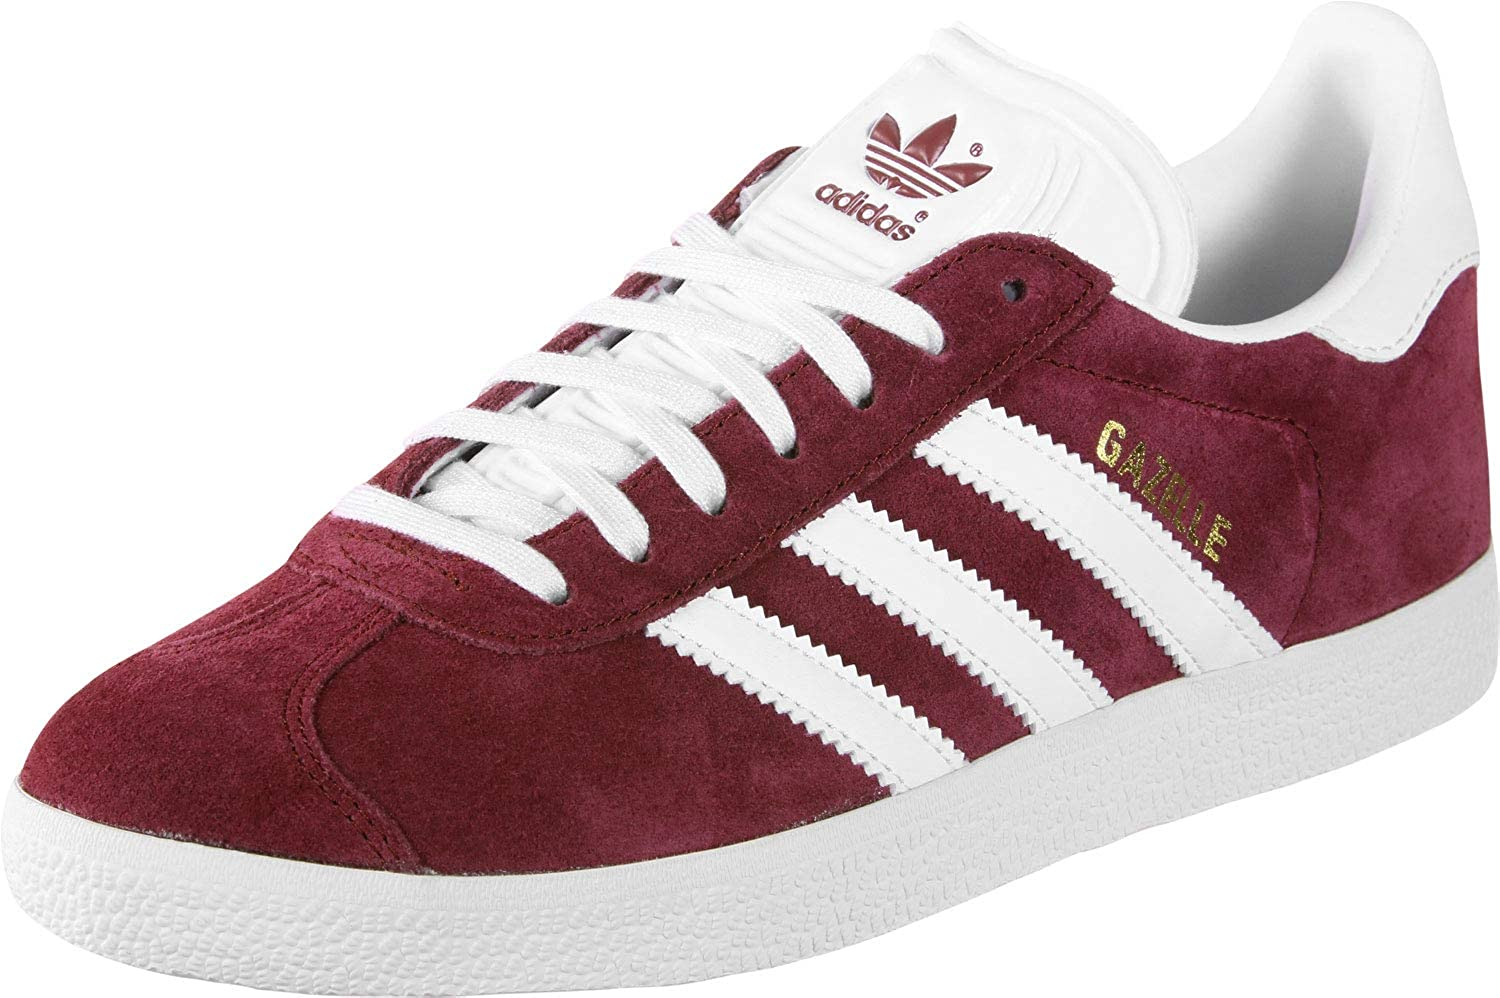 cocina Grave Dar a luz  Adidas Mens Gazelle Suede Burgundy White Trainers 8 US: Amazon.ca: Shoes &  Handbags